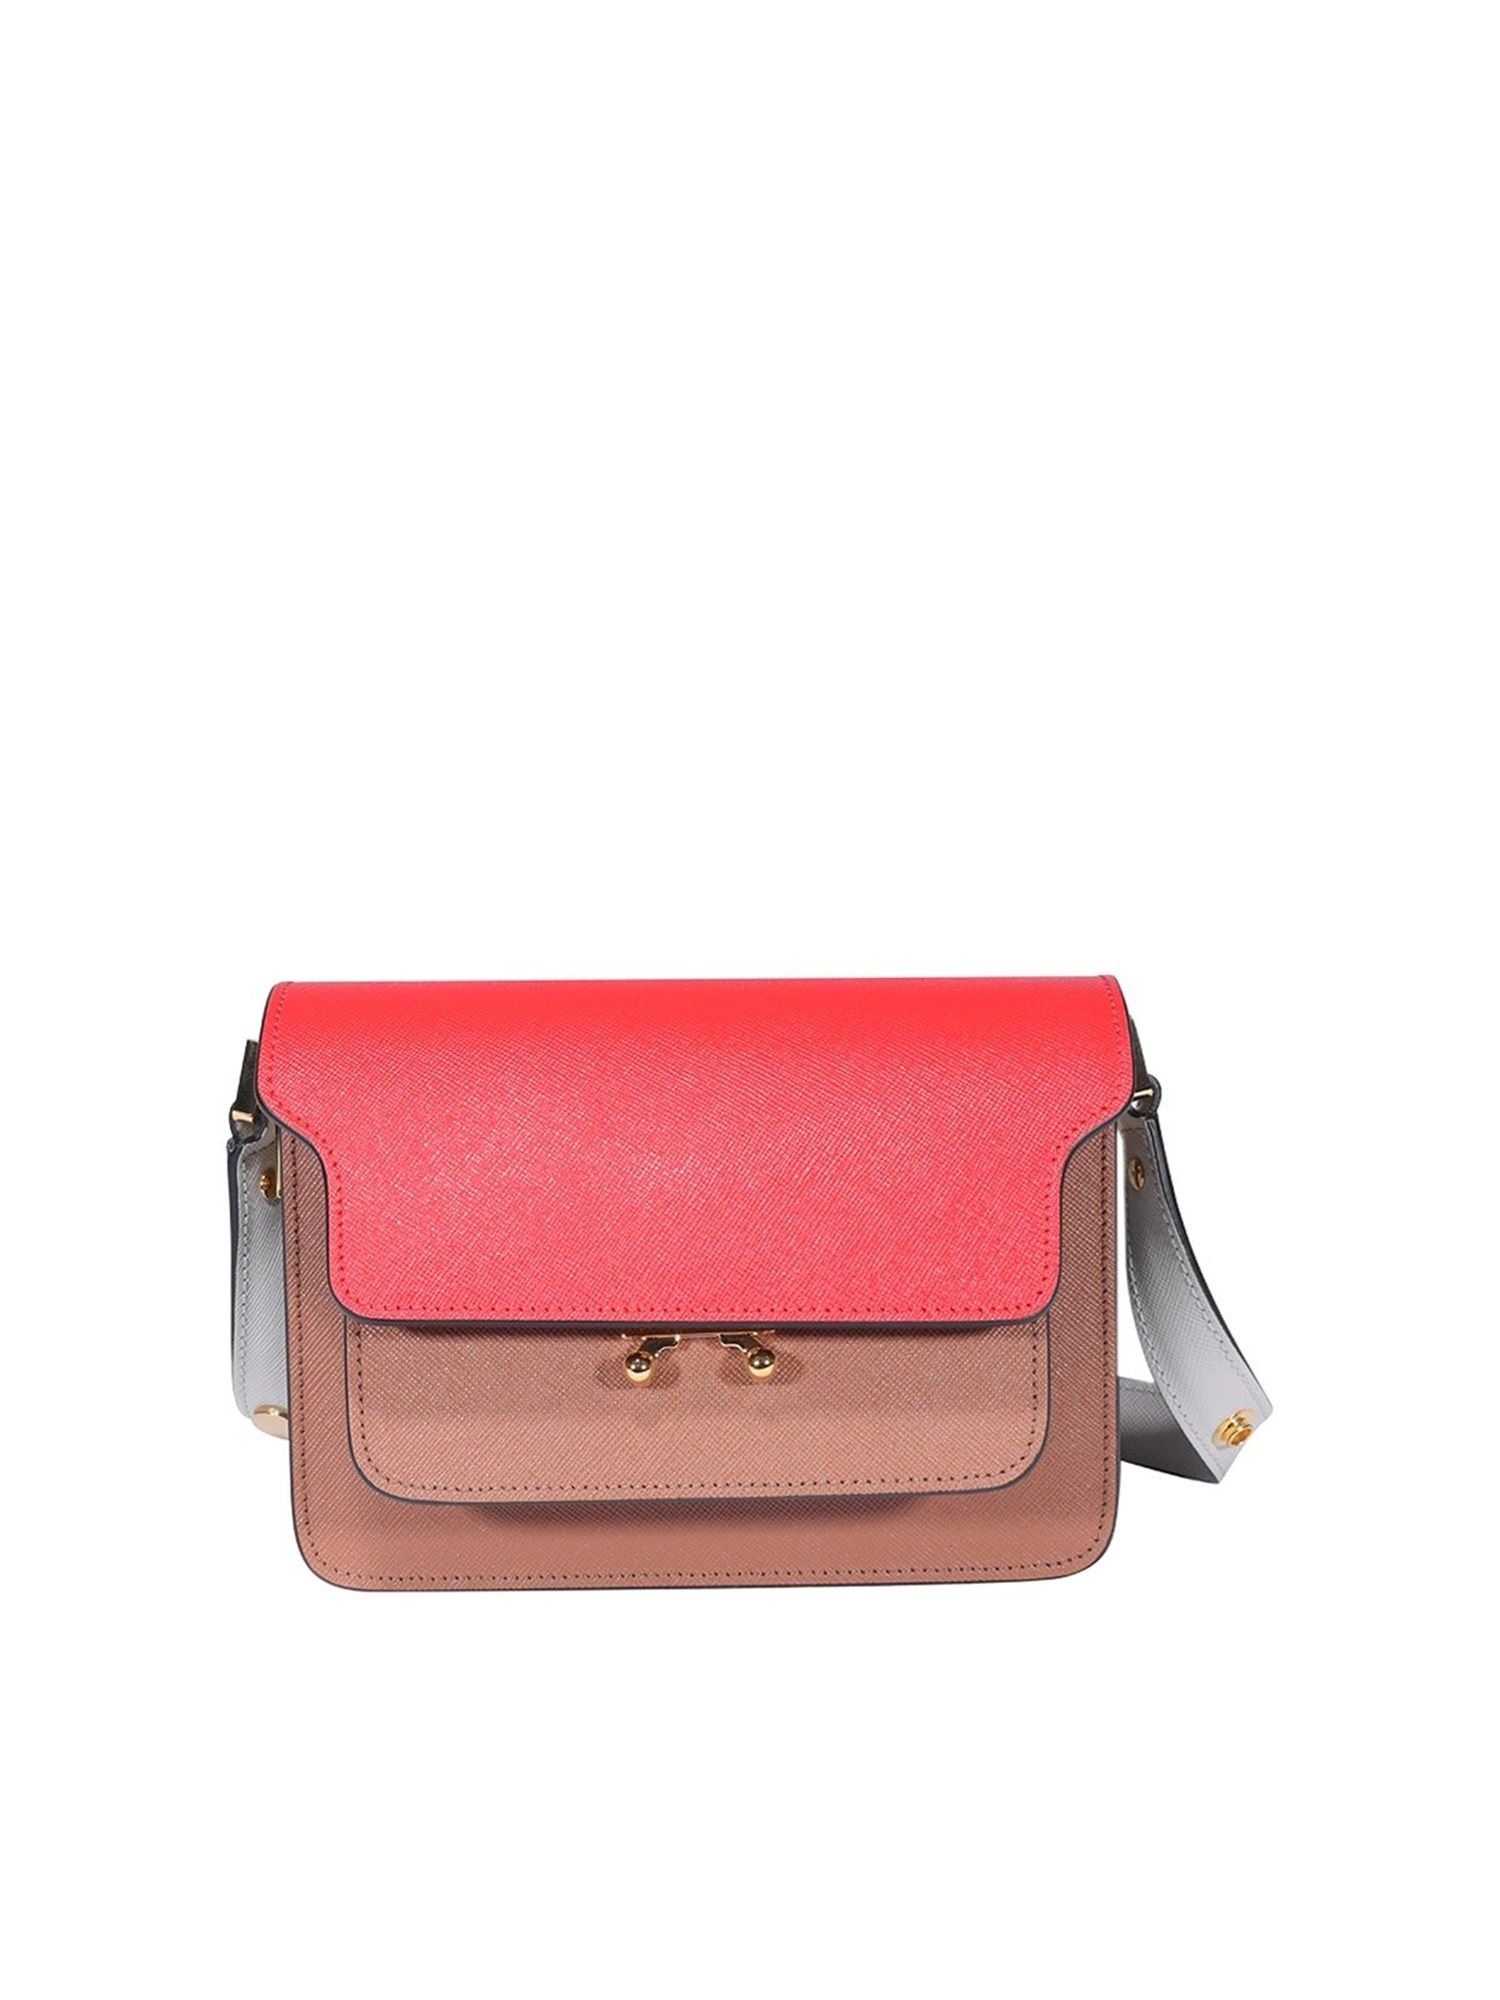 Marni TRUNK MINI BAG IN SHADES OF PINK